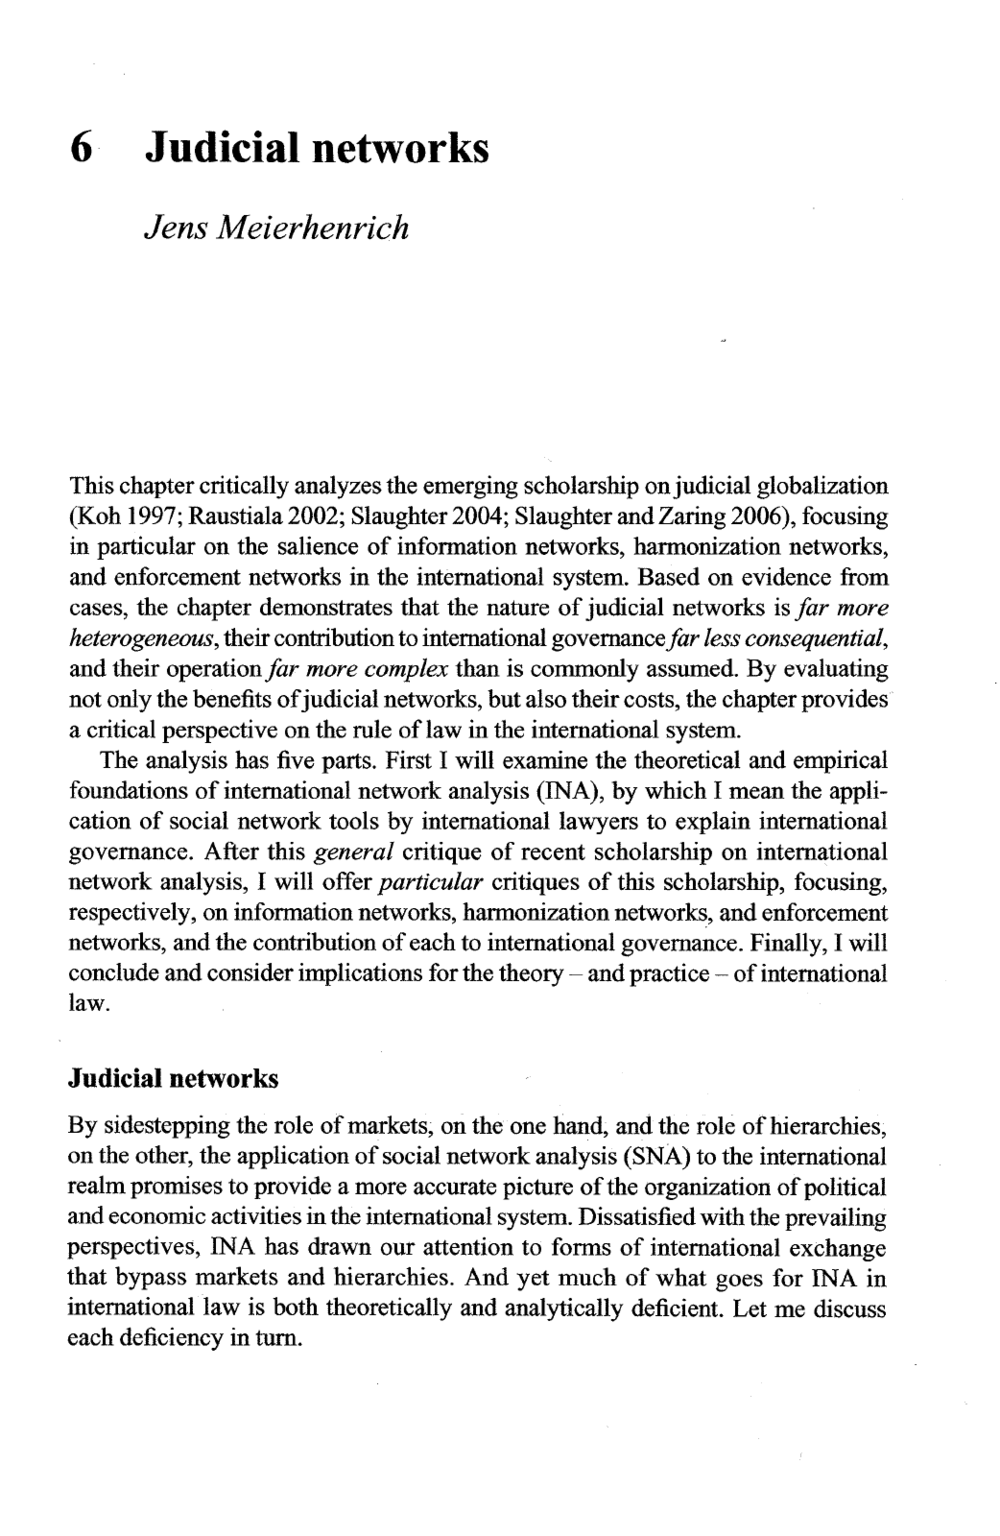 [8] Screen Shot, Judicial Networks.png